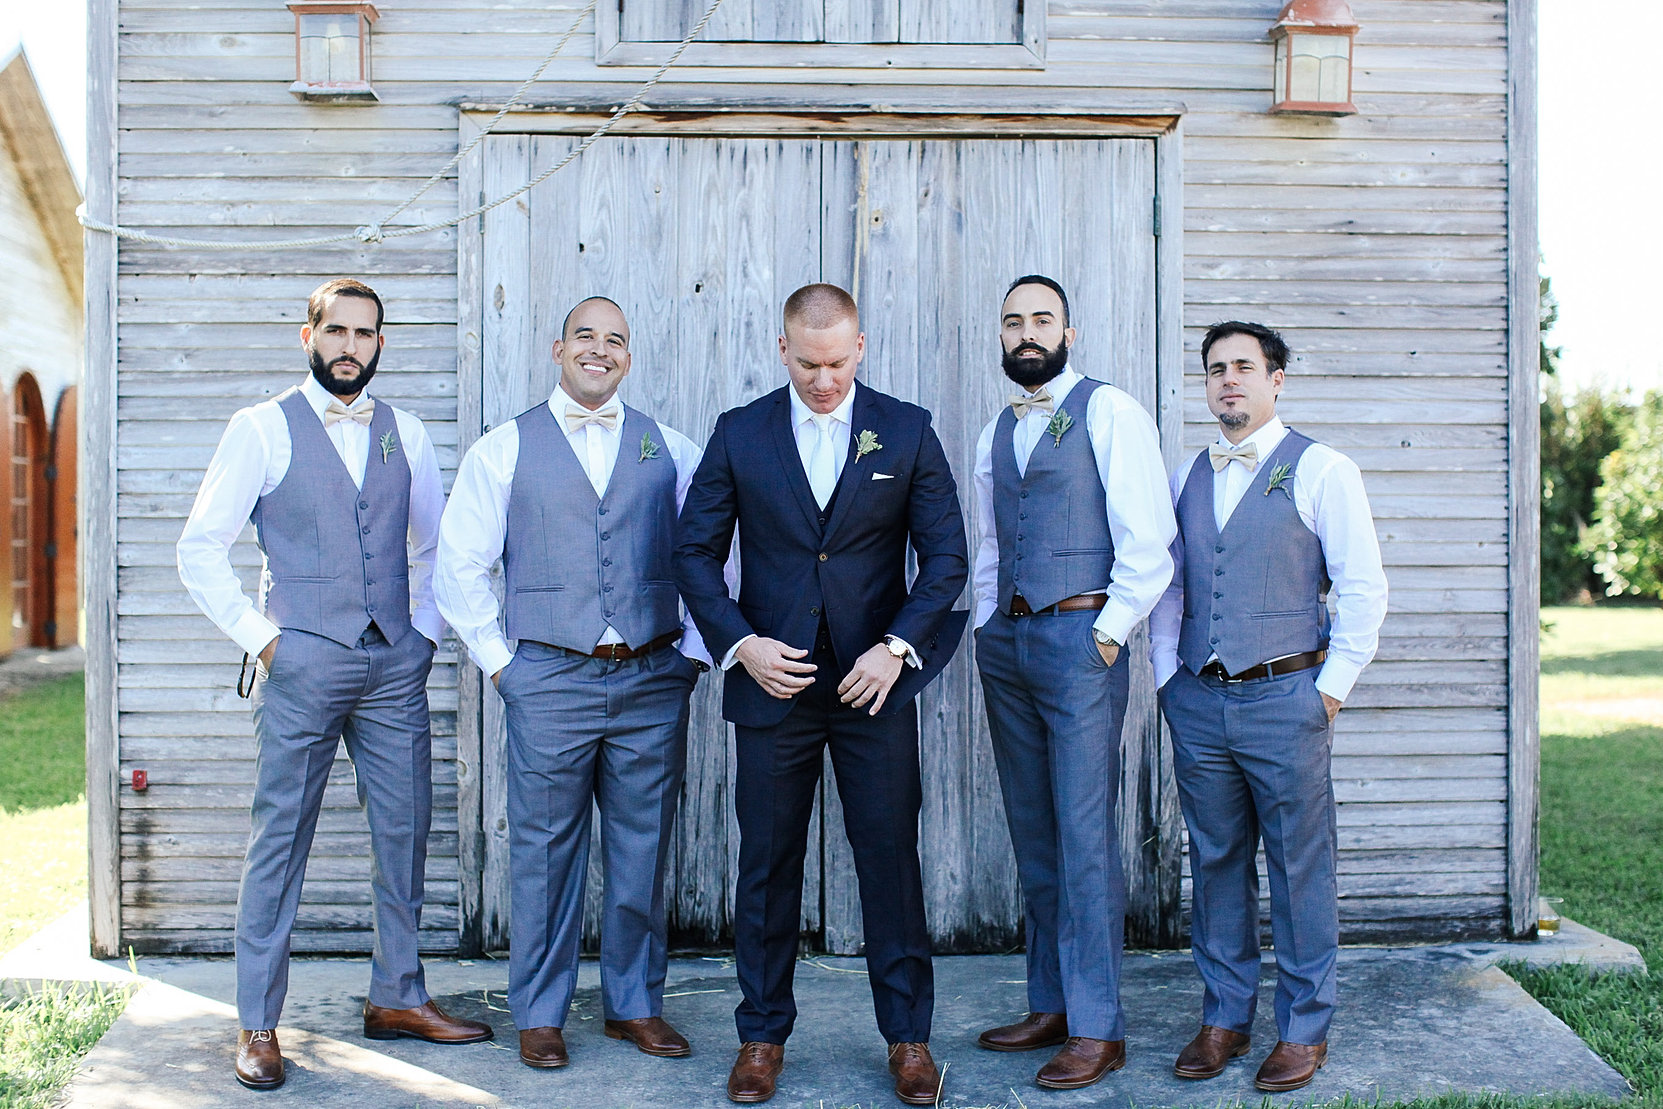 Contemporary Grooms Men Suit Gift - Wedding Dress - googeb.com